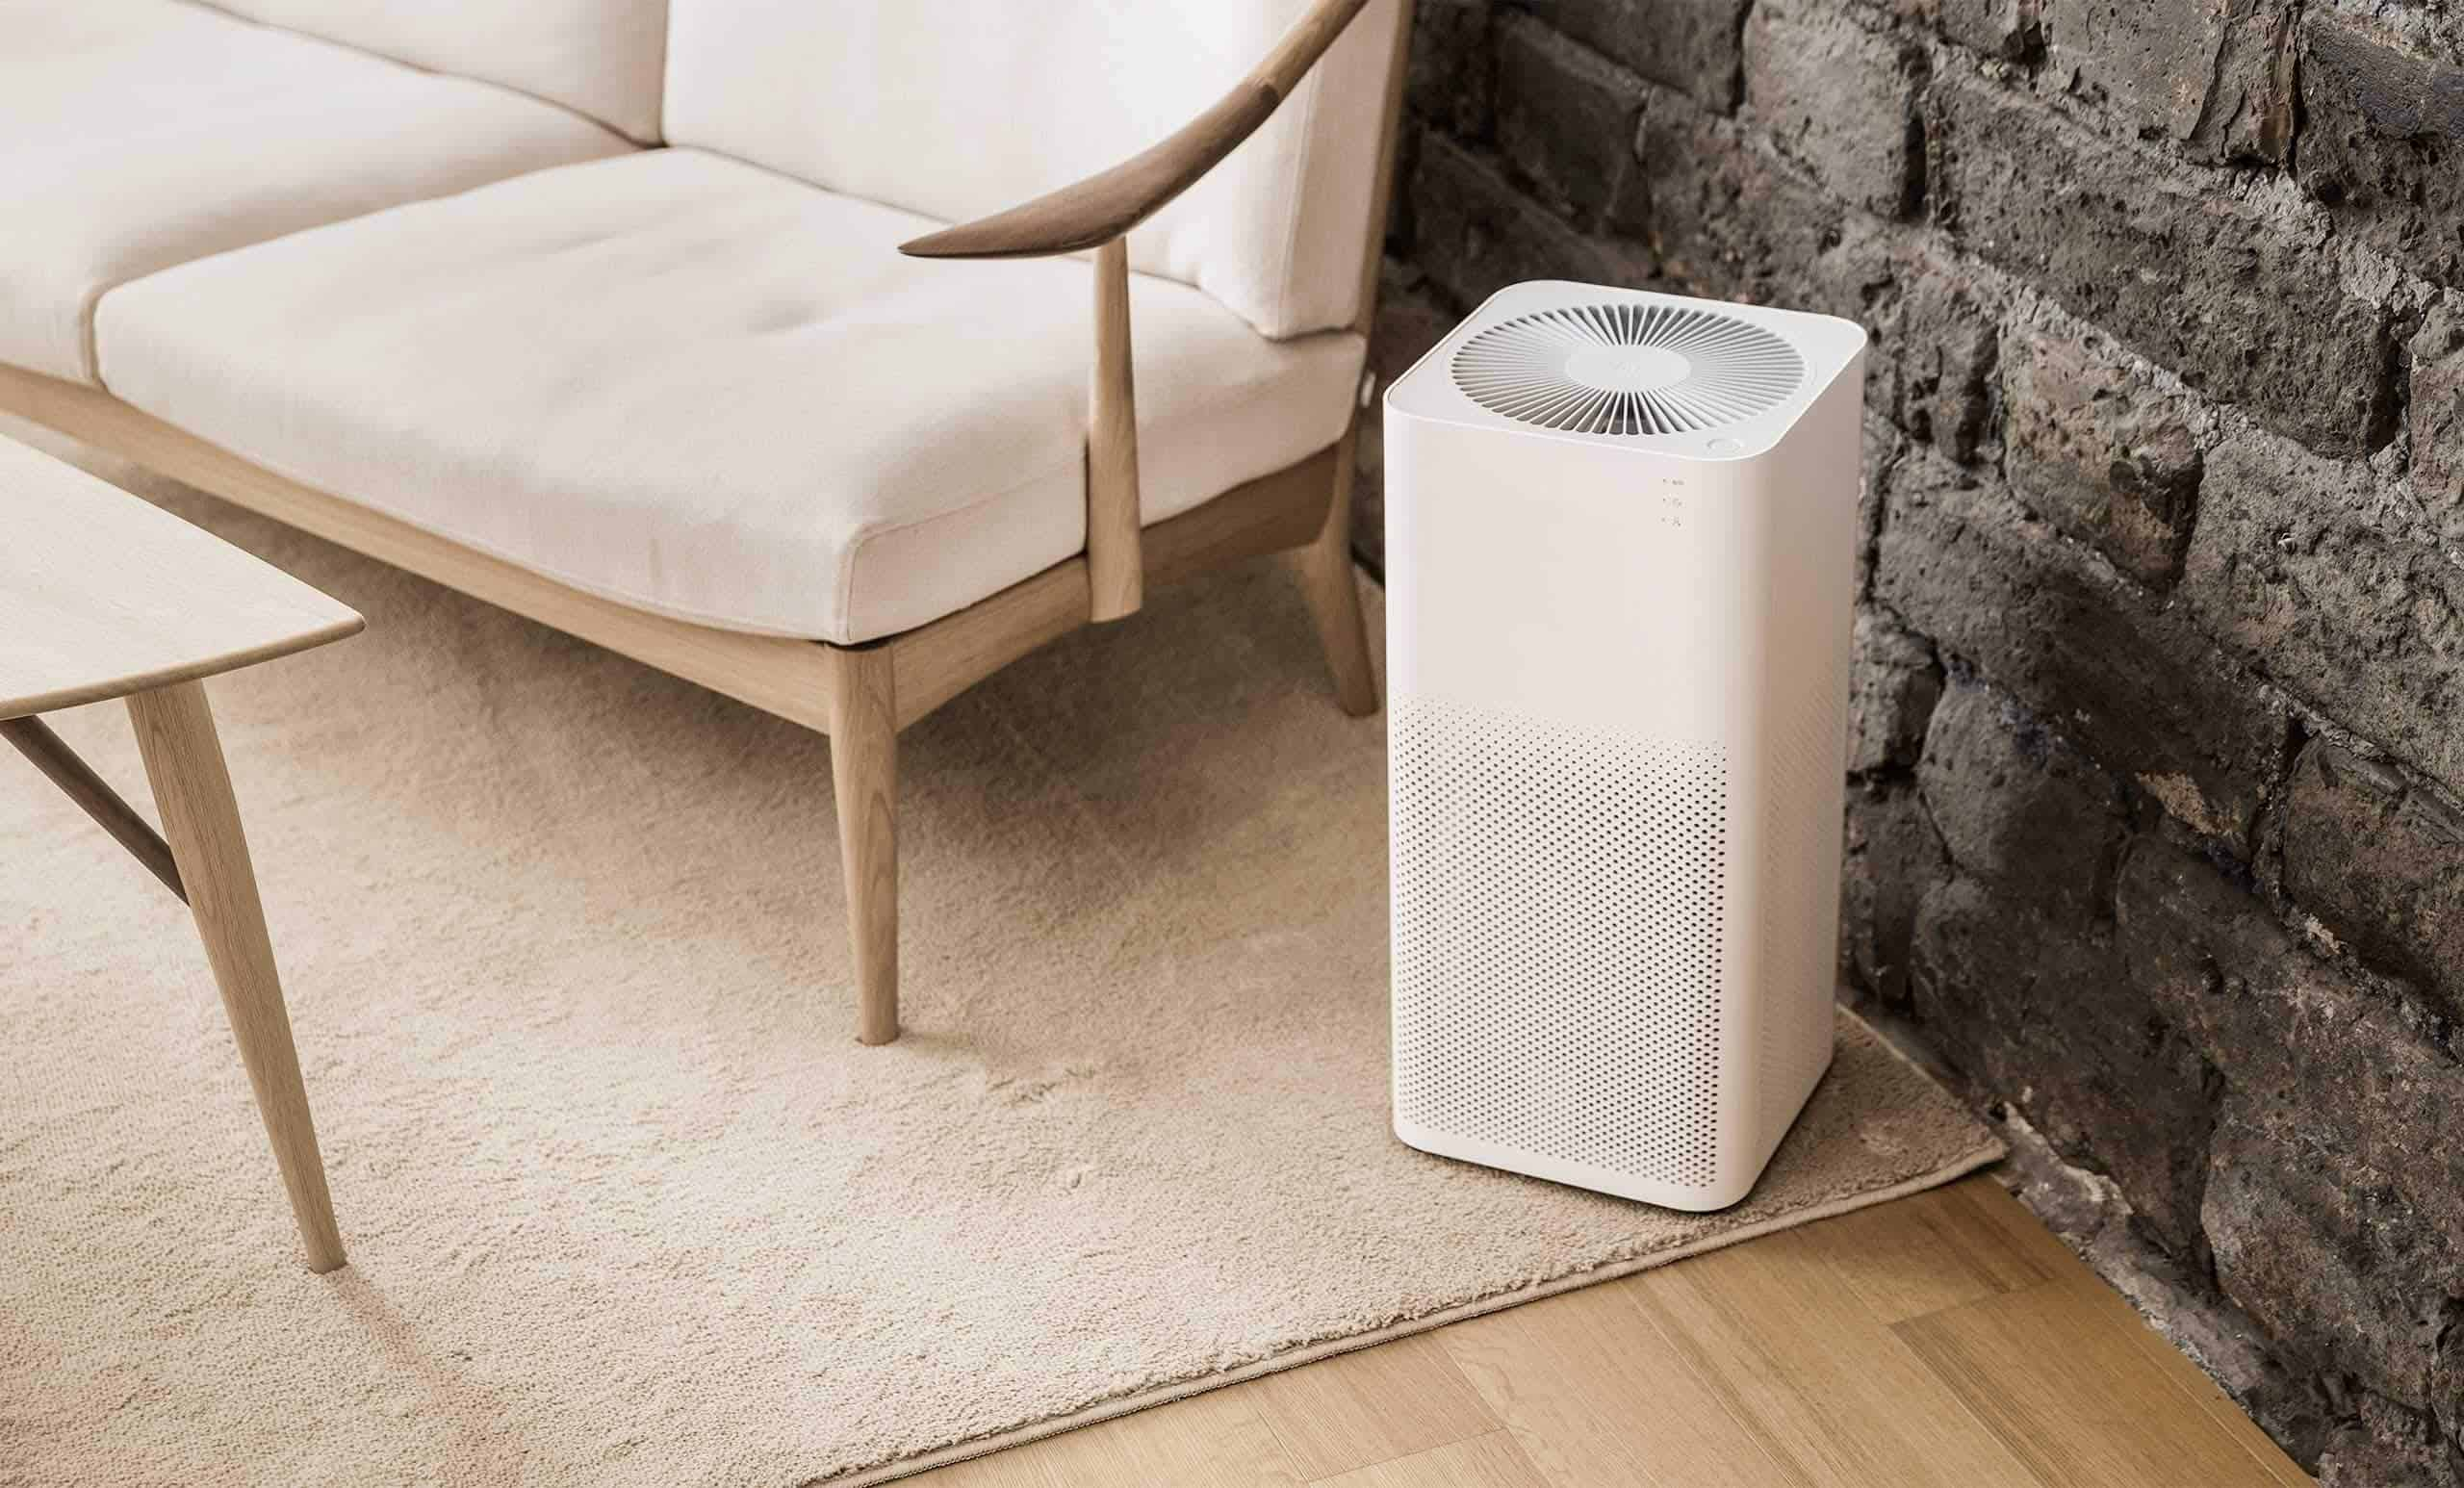 How Smart Air Filters and IoT Apps Can Help You Prepare for Seasonal Allergies